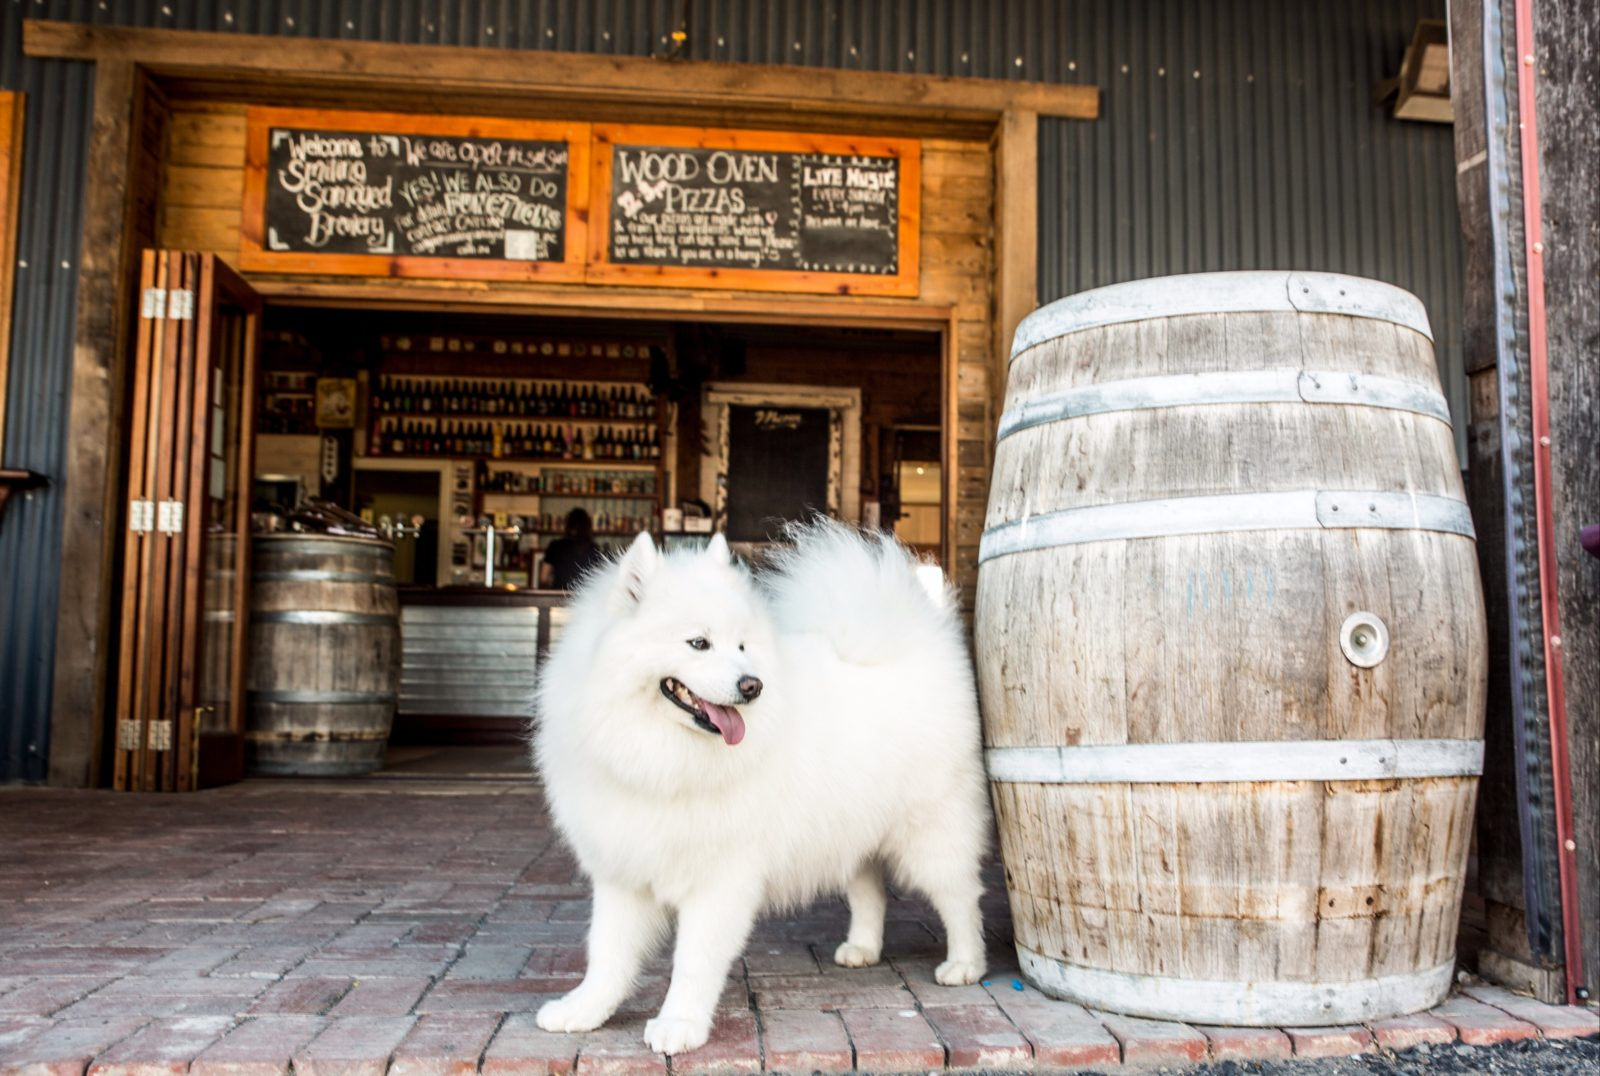 Hoppy the Samoyed greets guests at Smiling Samoyed Brewery